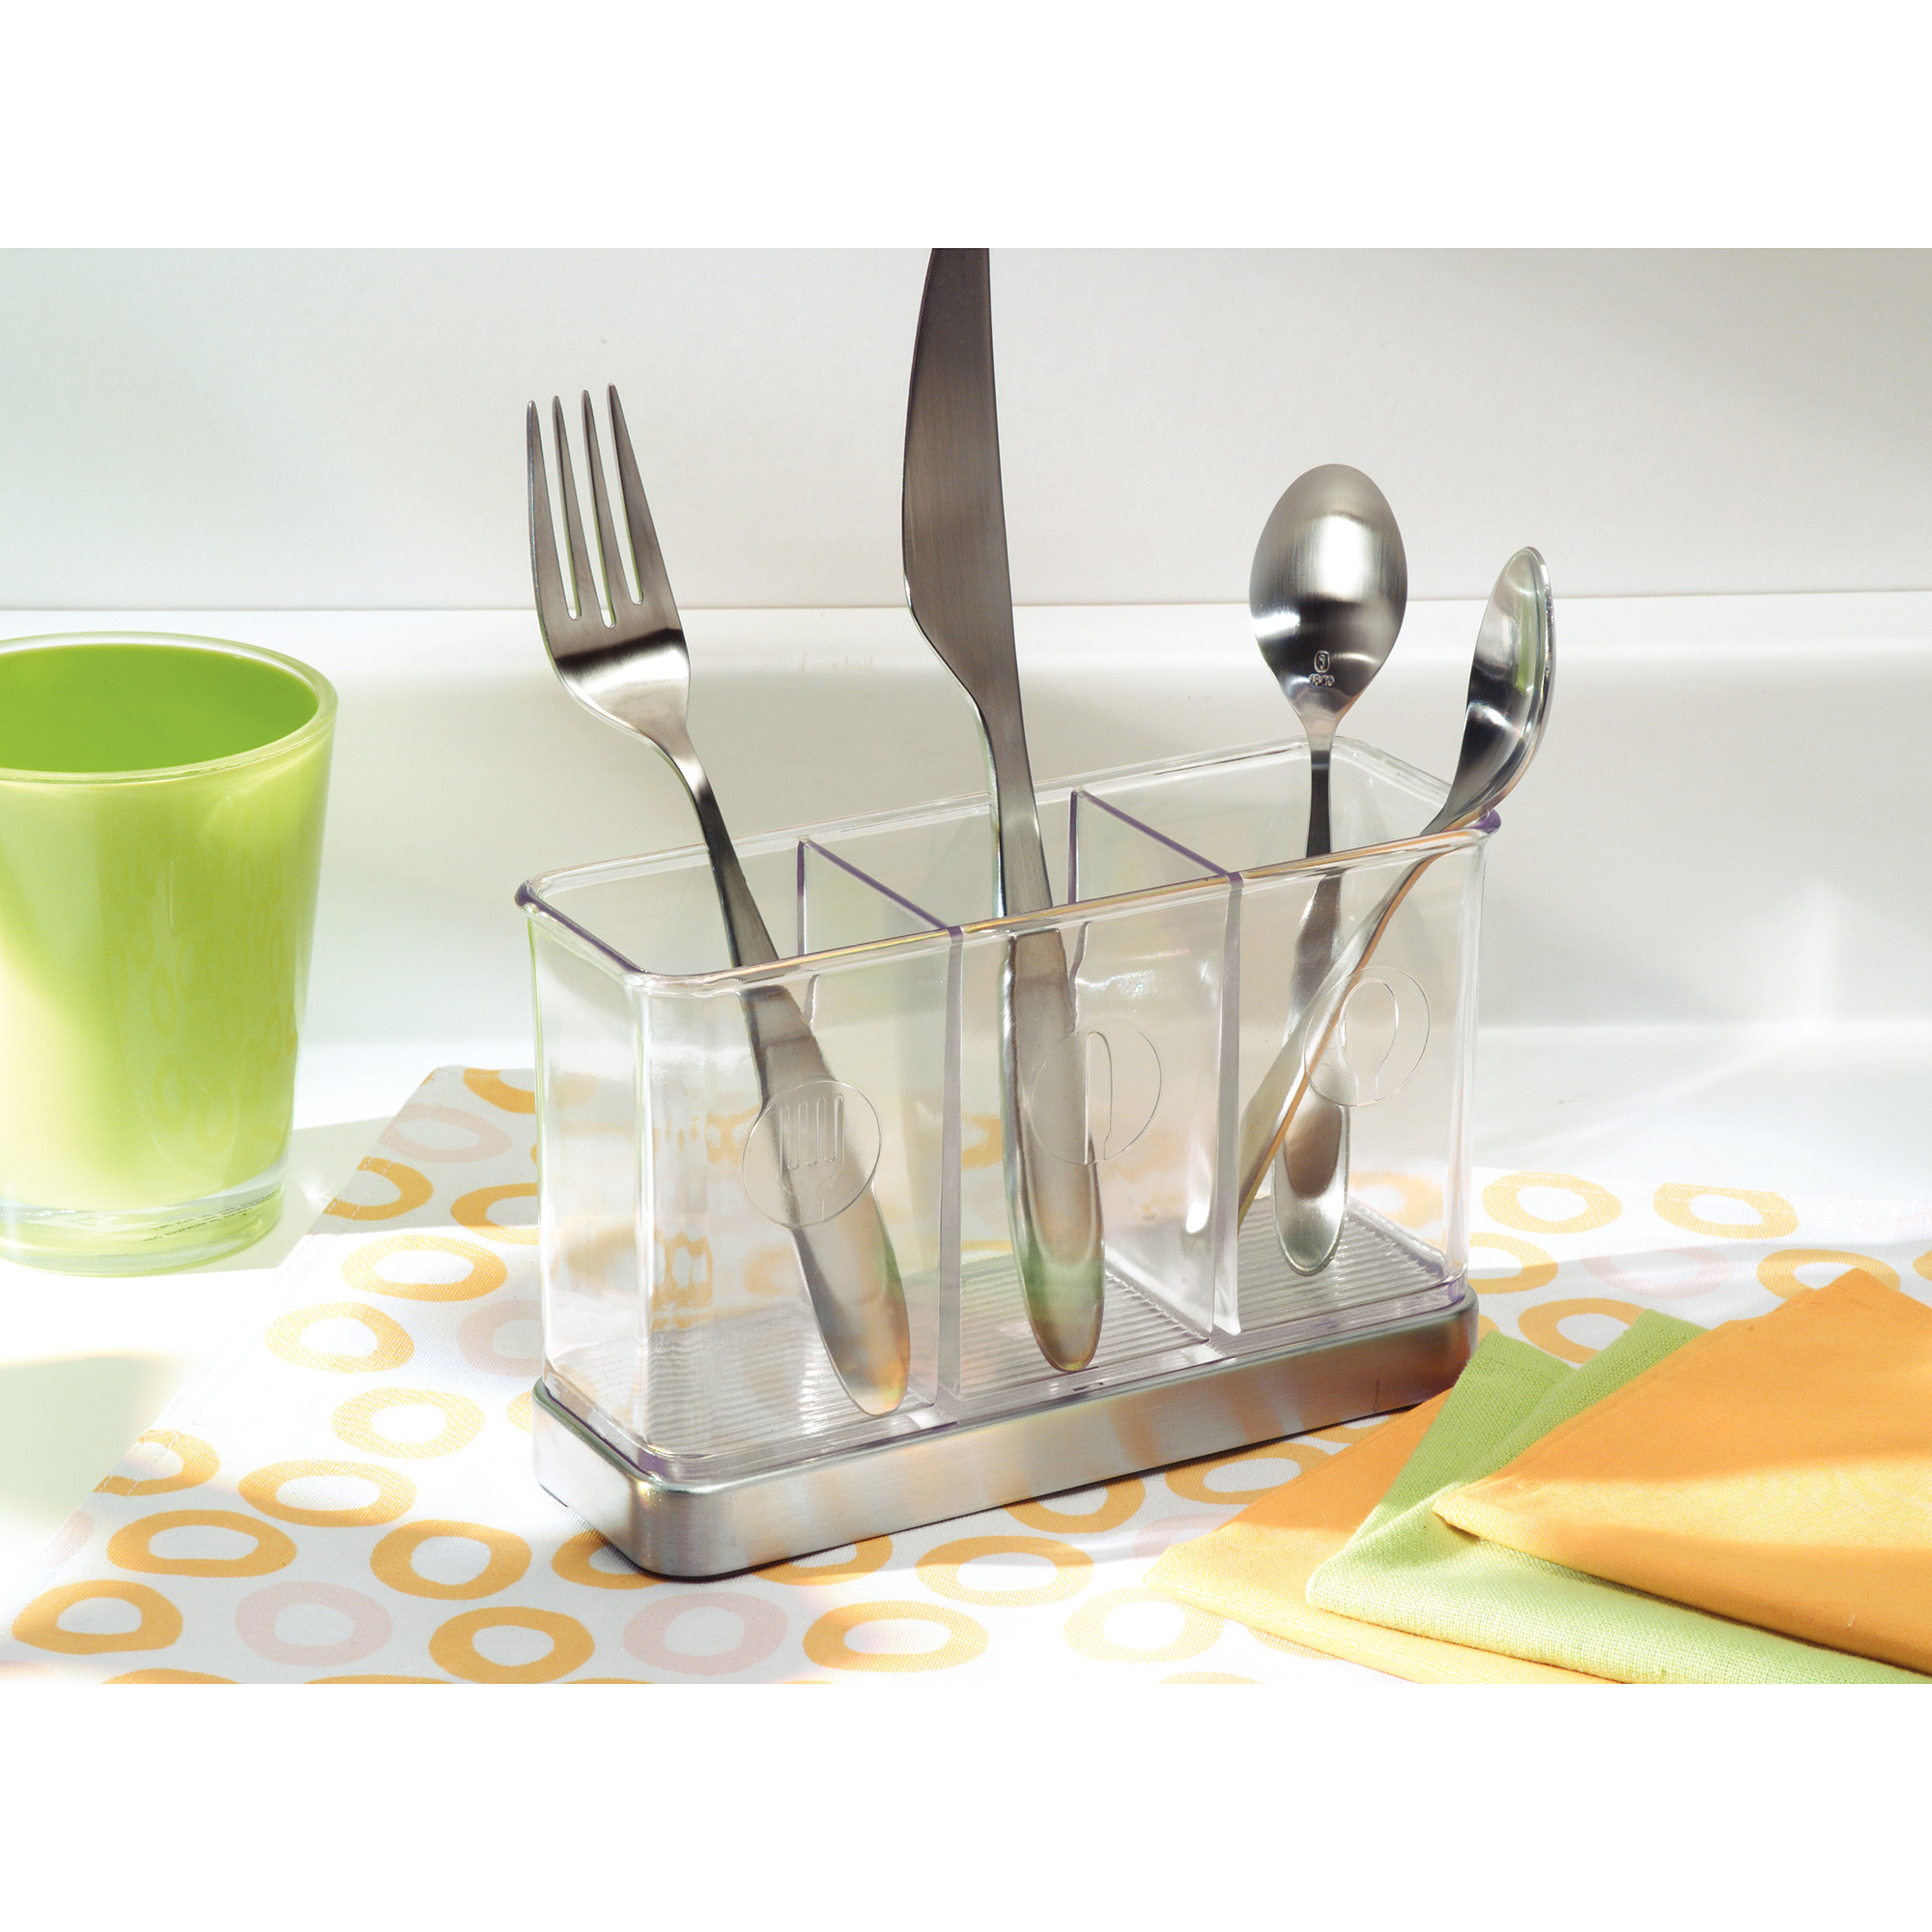 InterDesign Forma Utensil, Spatula, Silverware Holder for Kitchen Countertop Storage, Brushed Stainless Steel and Clear